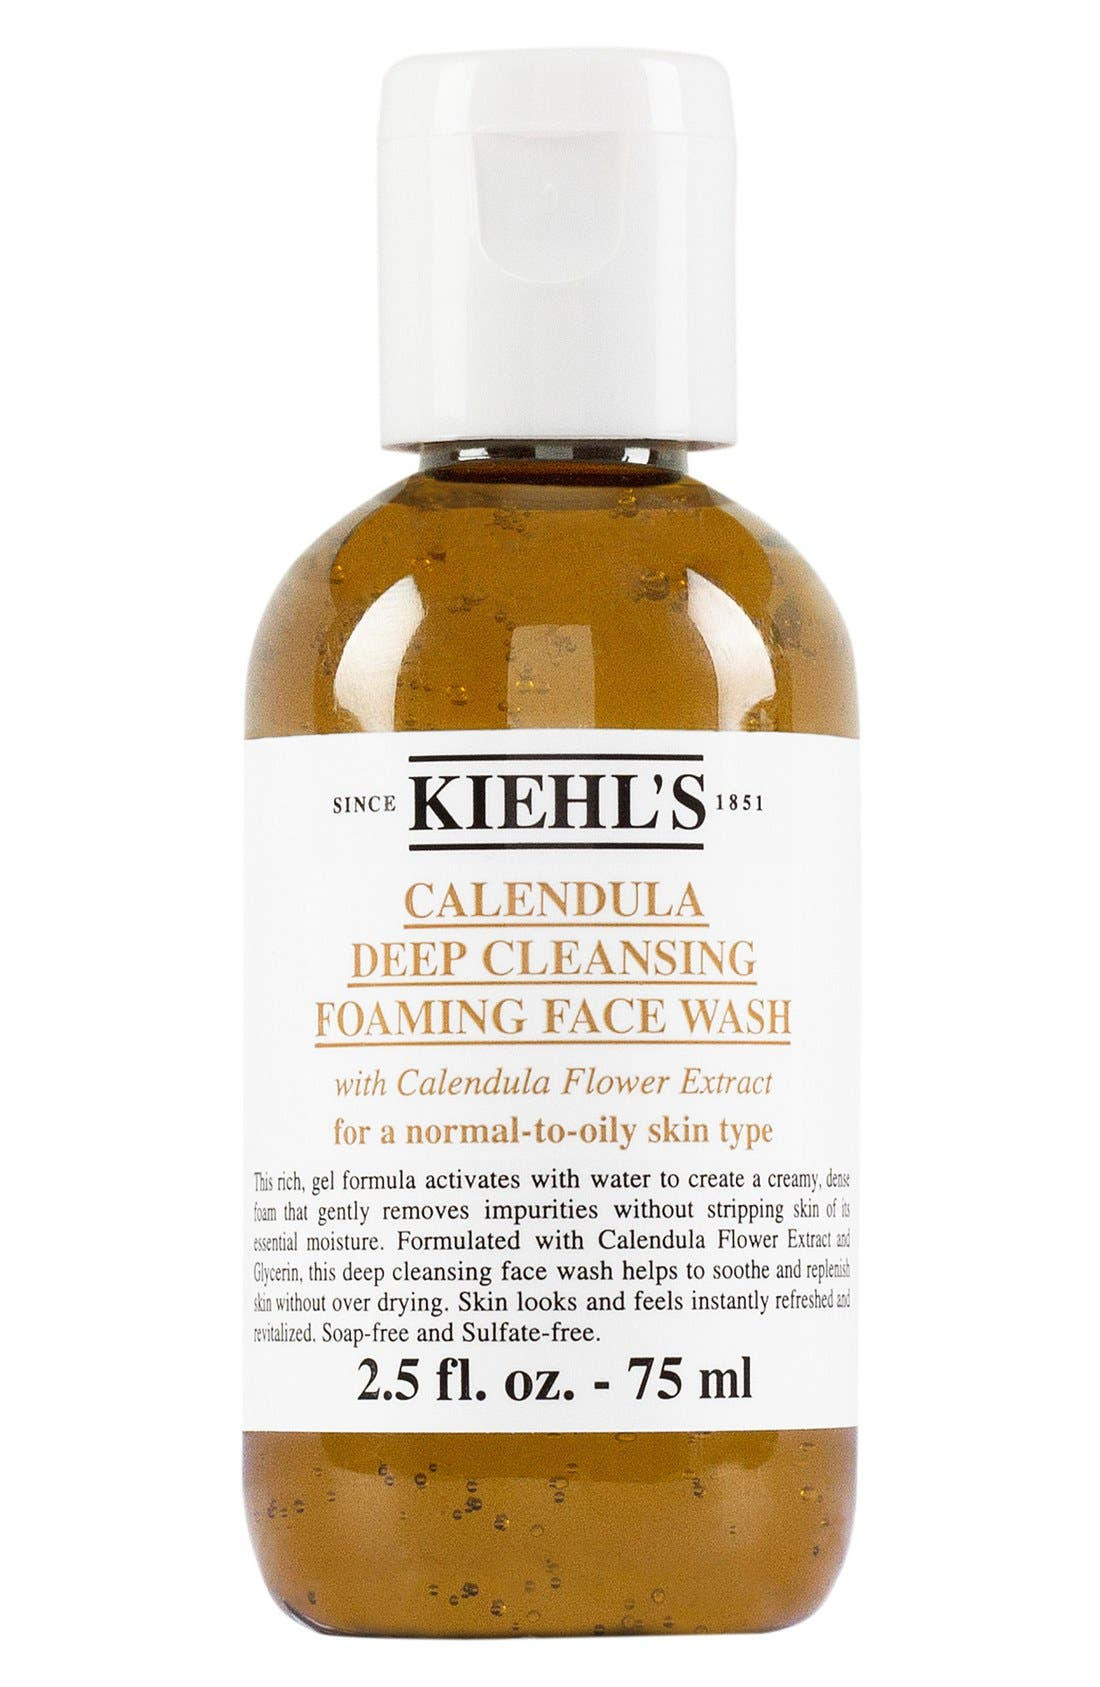 Calendula Deep Cleansing Foaming Face Wash for Normal-to-Oily Skin,                             Alternate thumbnail 4, color,                             NO COLOR